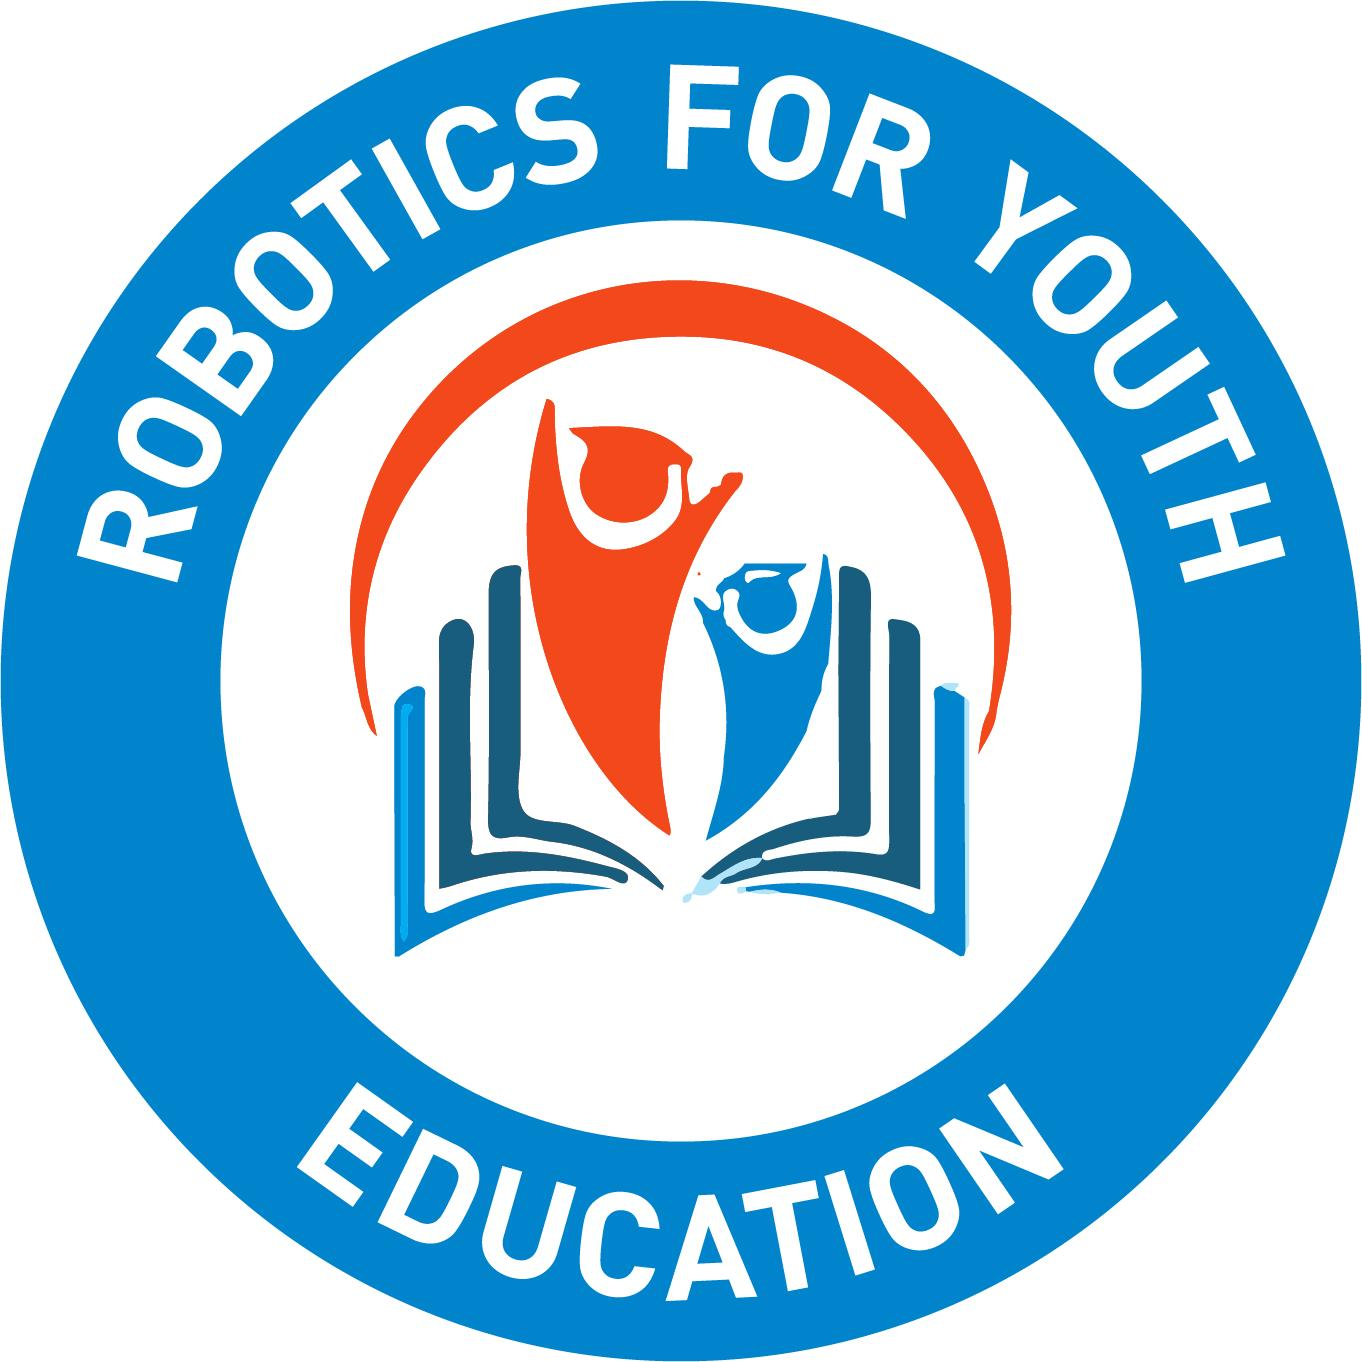 Educate-a-Youth